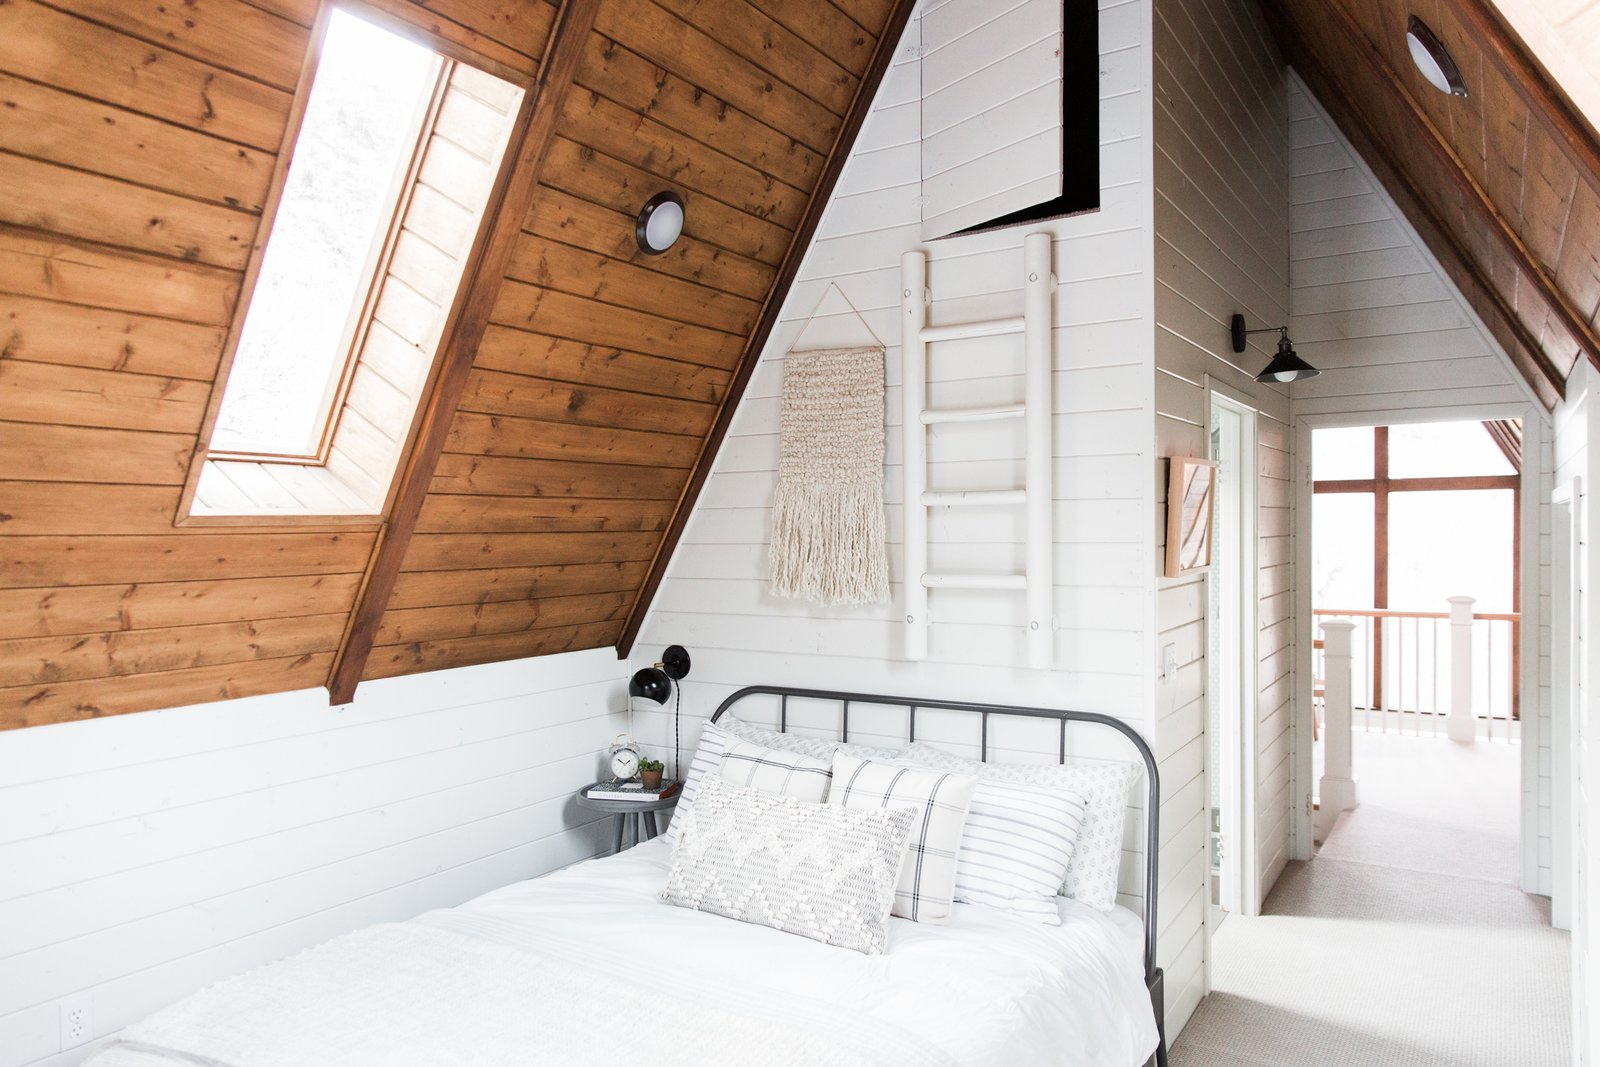 Scandinavian Folk Obsession Scandinavian Box Beds: Photo 7 Of 14 In Before & After: An A-Frame Cabin Boasts